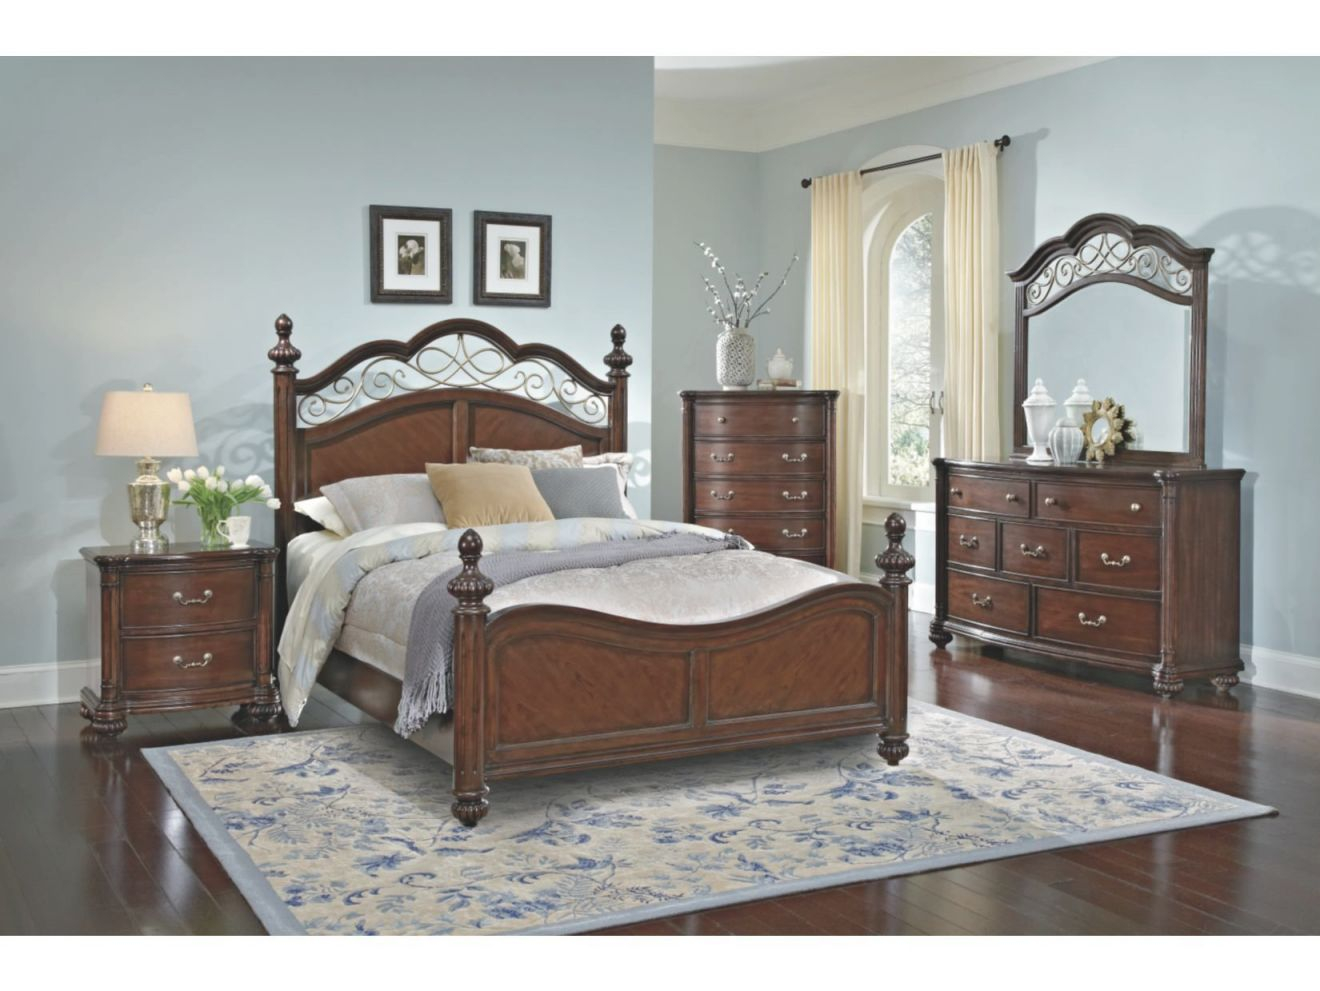 If The Bedroom Set Was My Style: Derbyshire Cherry Set for Value City Furniture Bedroom Set